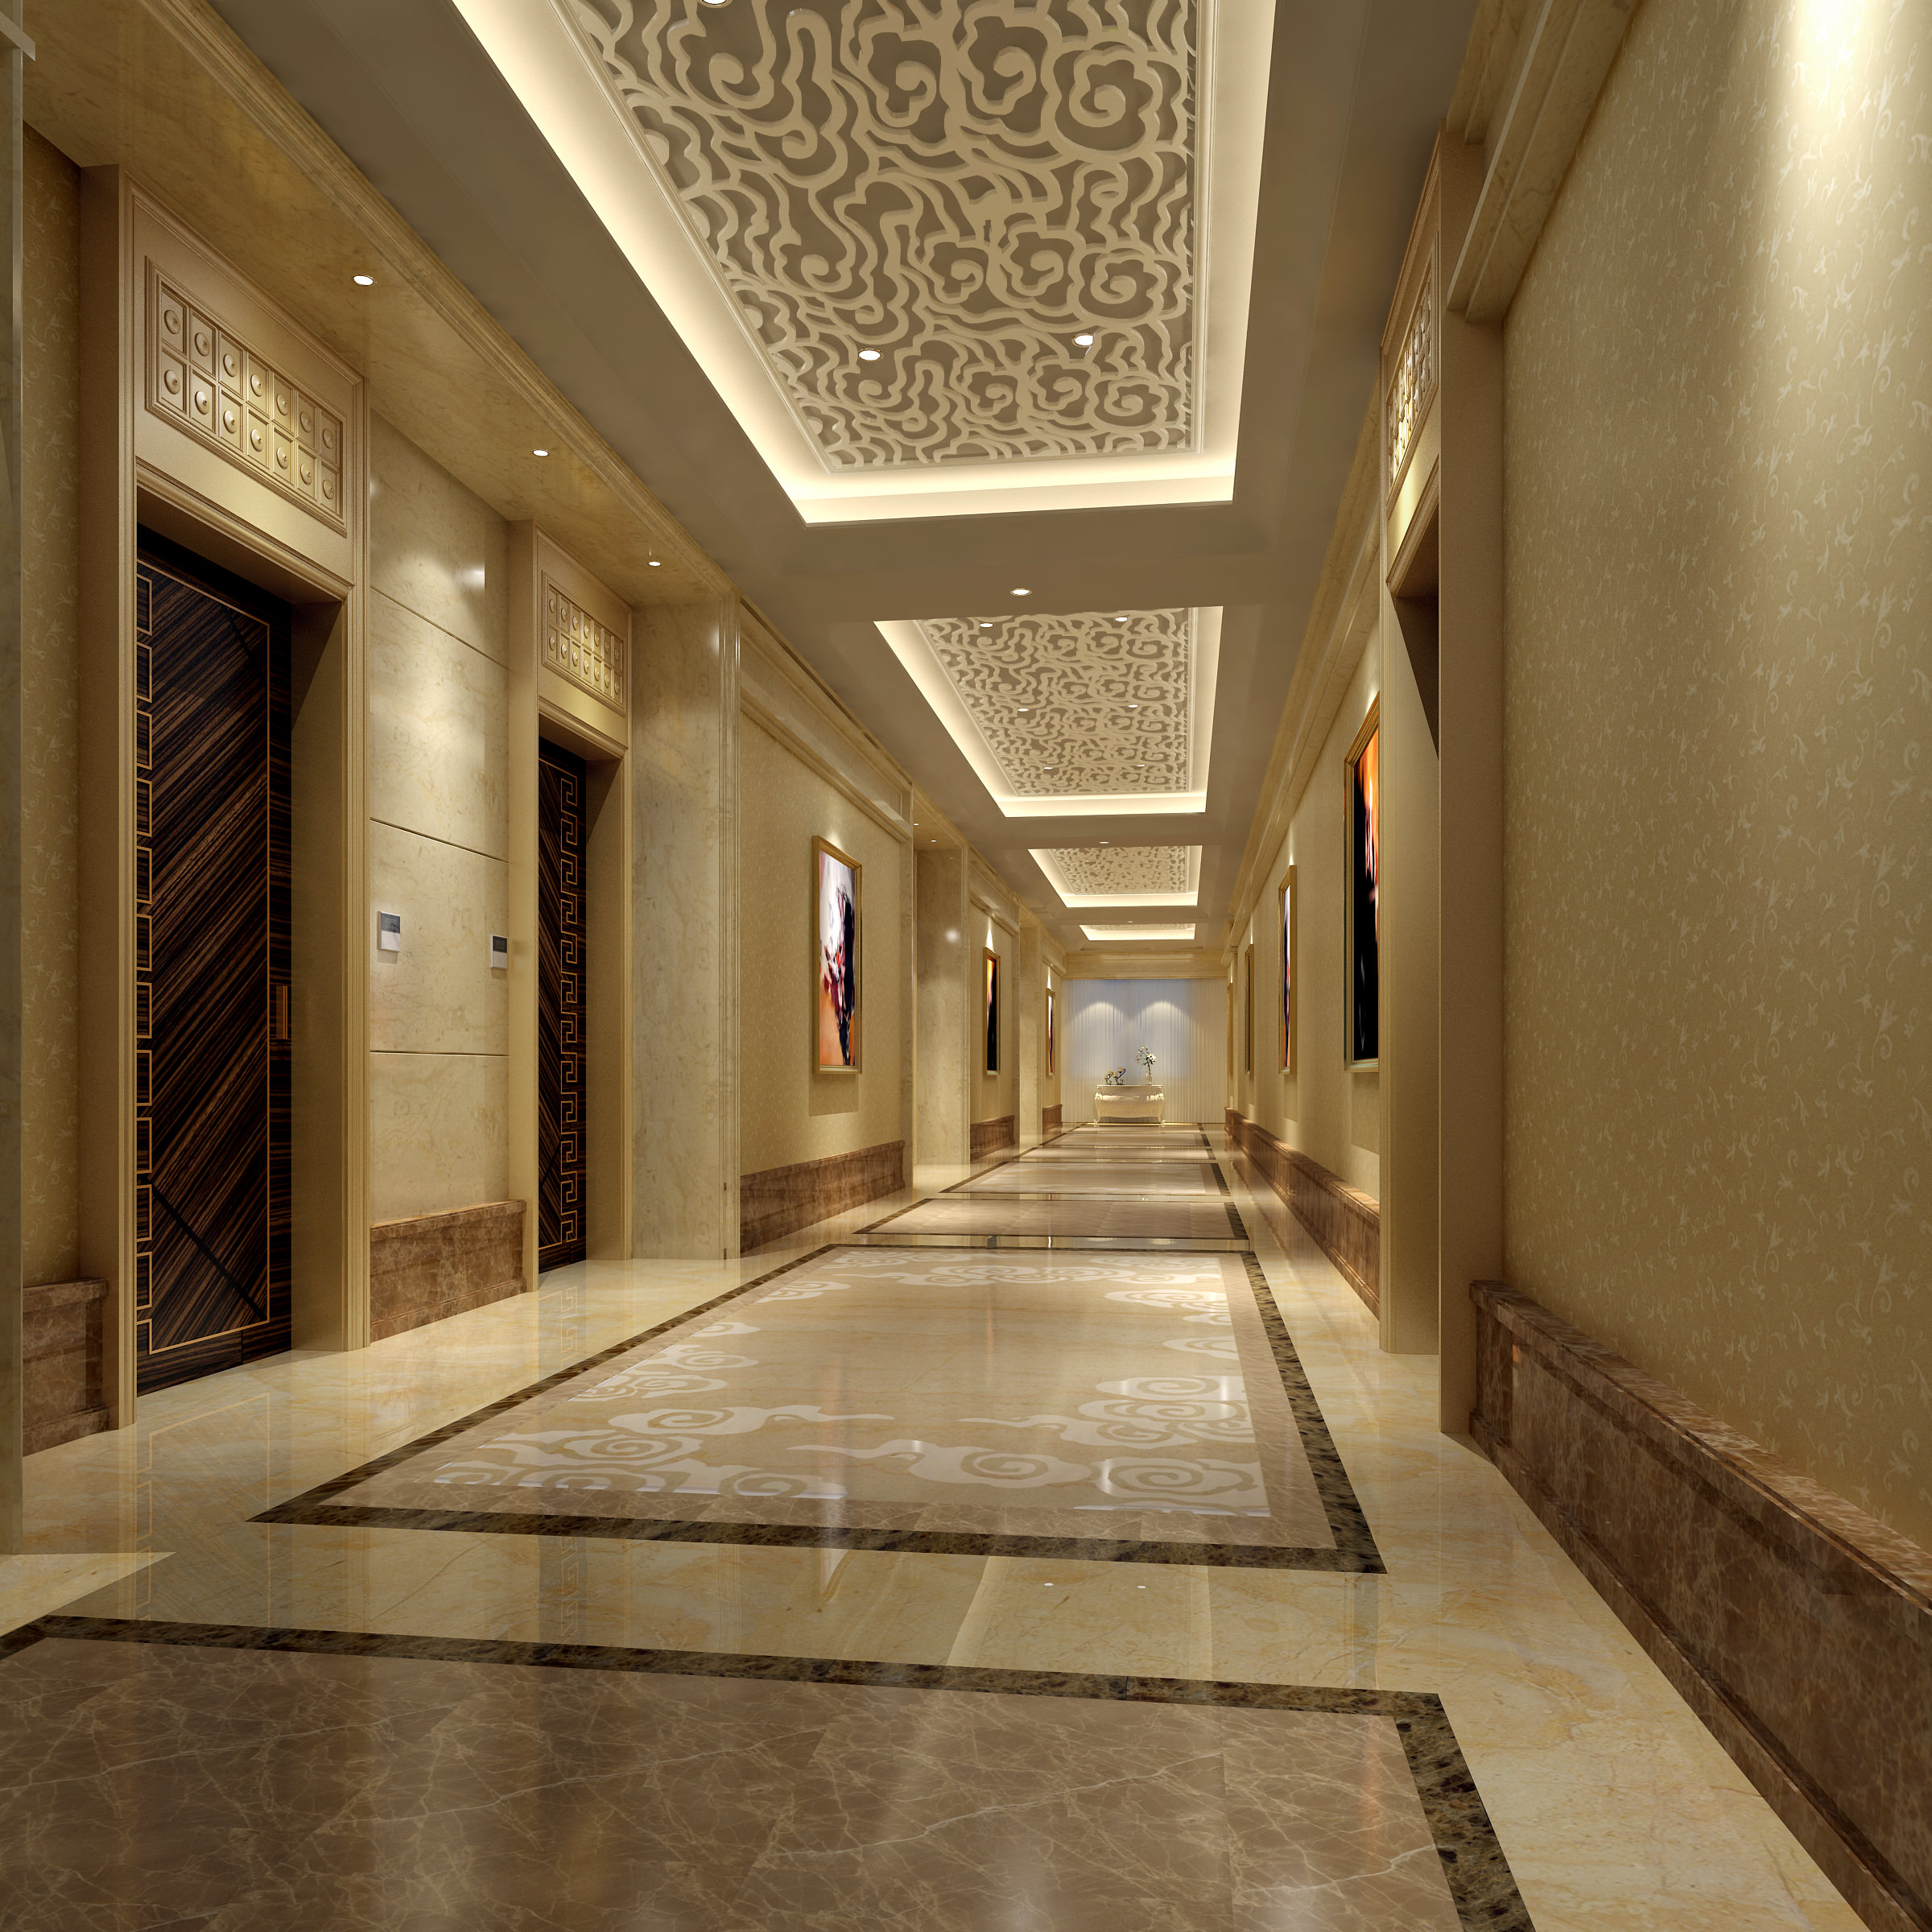 Collection hotel interior collection 3d model max for Interior decoration in 3d max